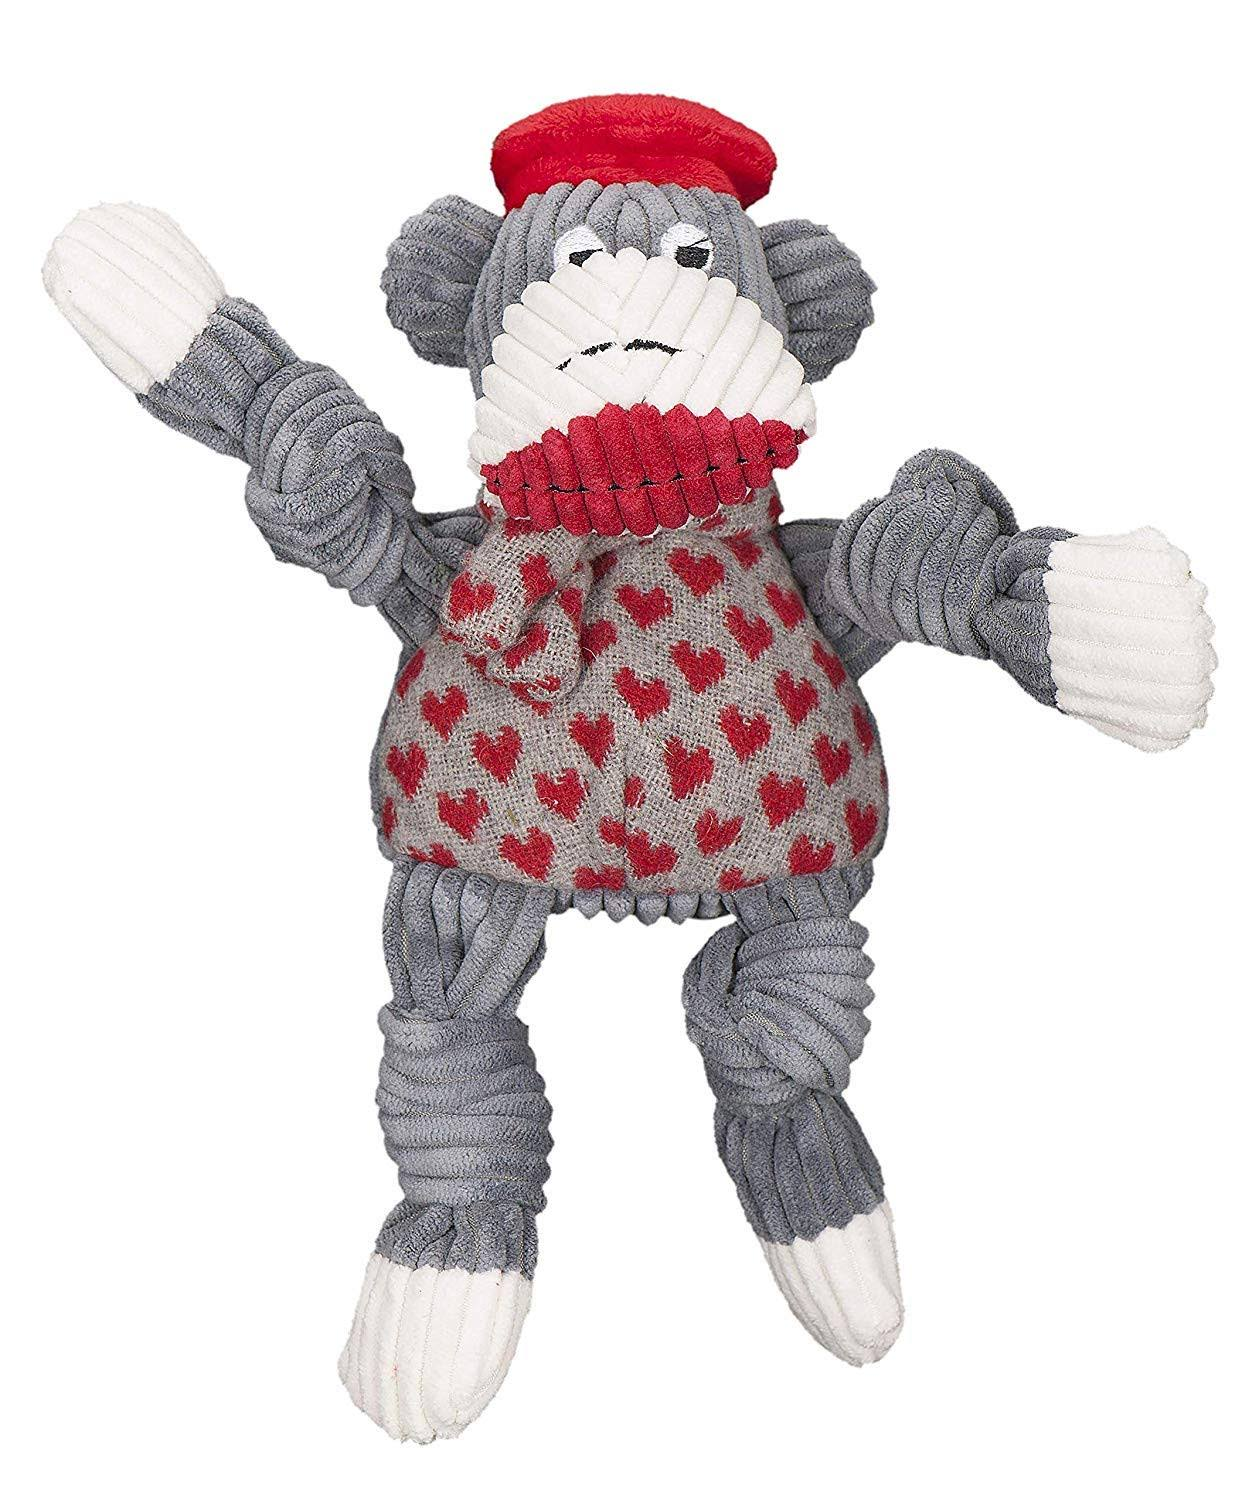 Hugglehounds Sock Monkey Knotties Jean Claude Plush Dog Toy, Small